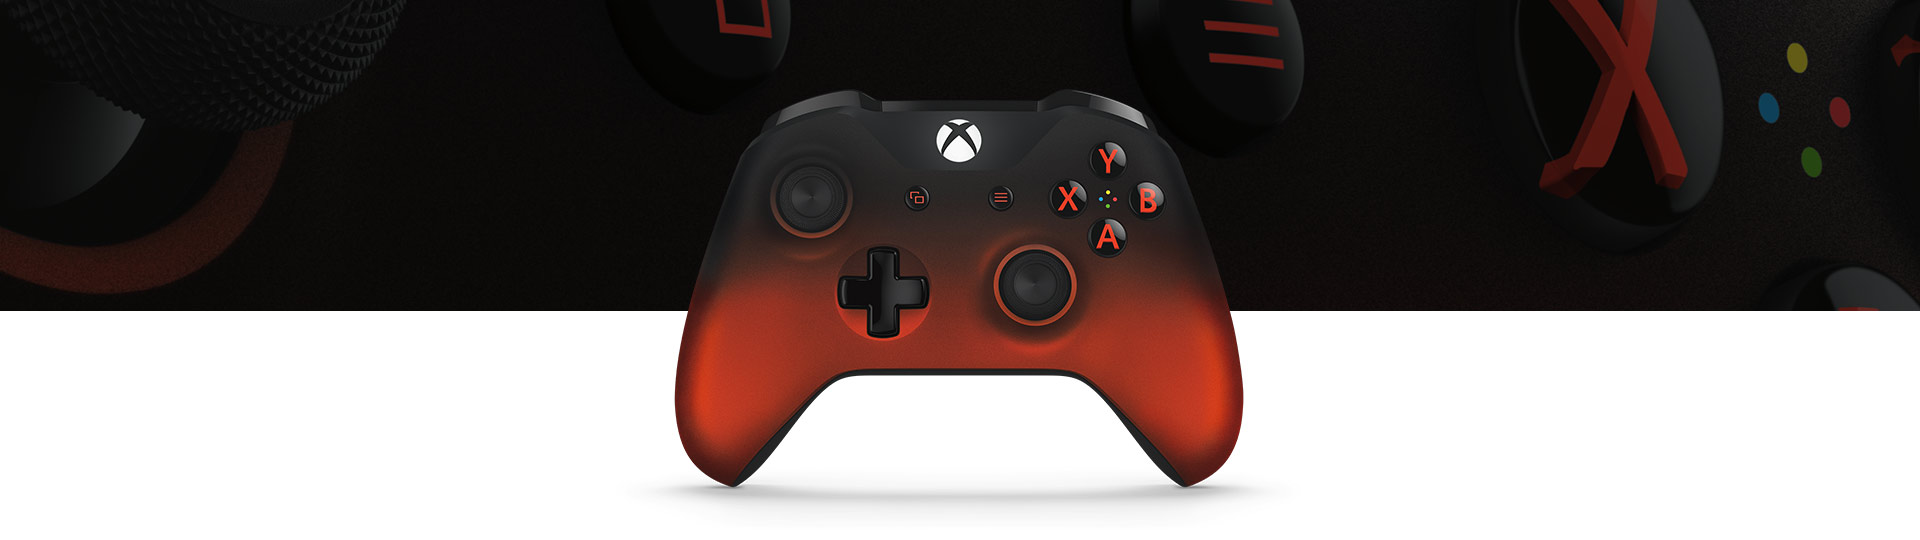 Xbox Wireless Controller - Volcano Shadow Special Edition